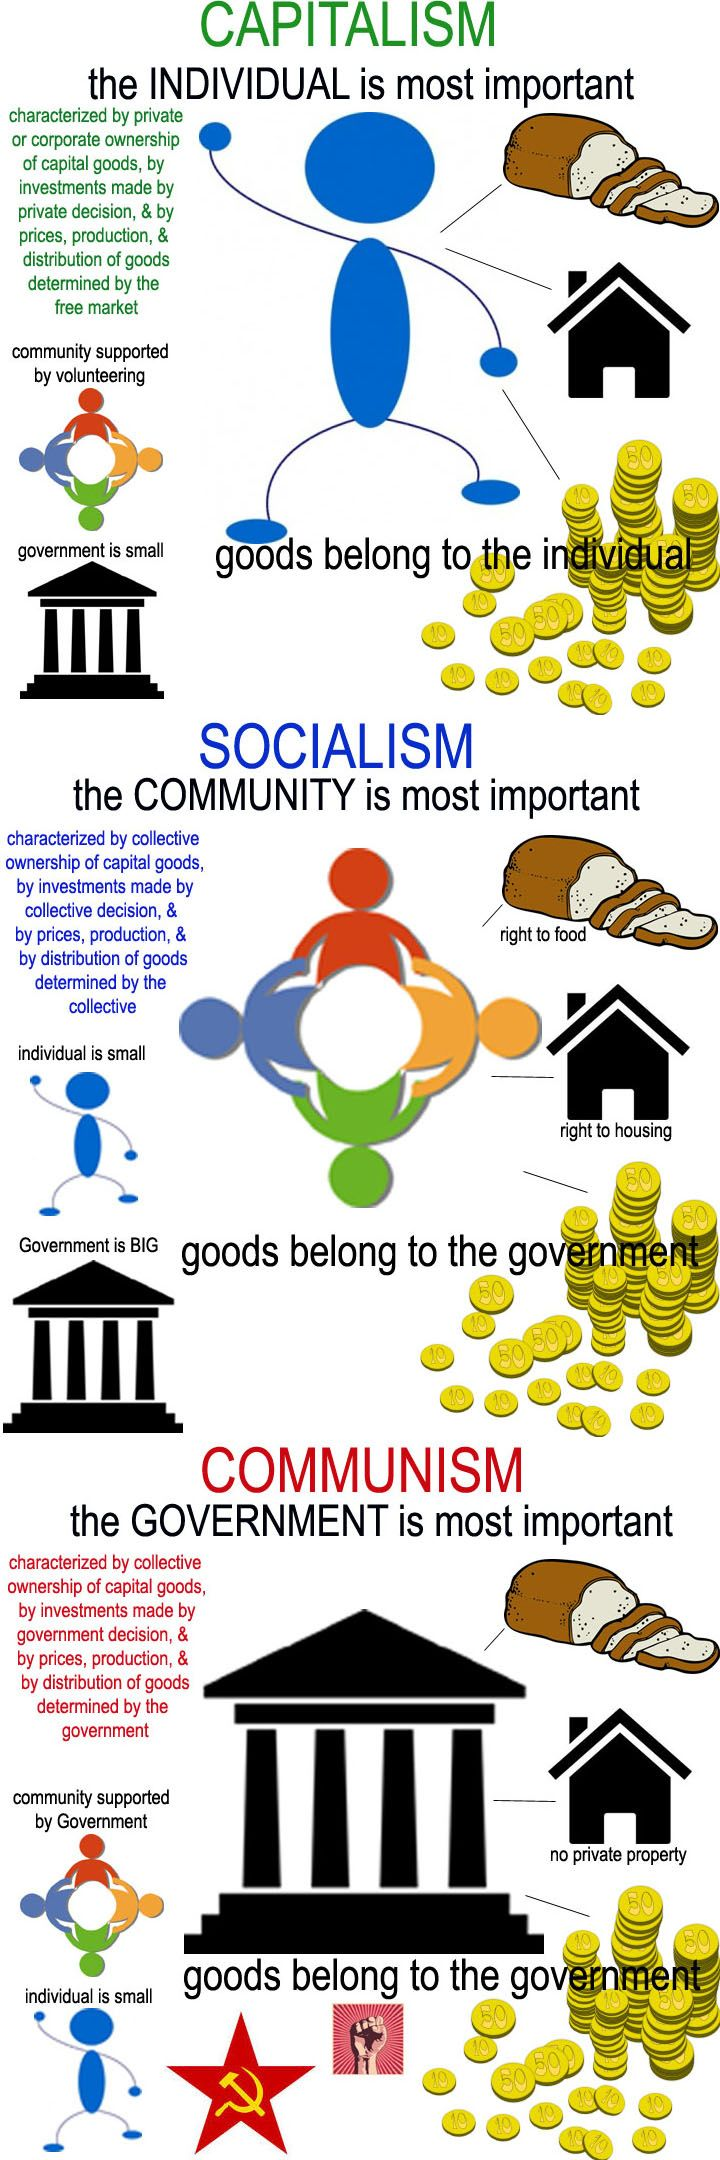 Understanding the differences between capitalism, socialism & communism....Don't you get what BO is doing to this country!!!!  The worst president EVER!!